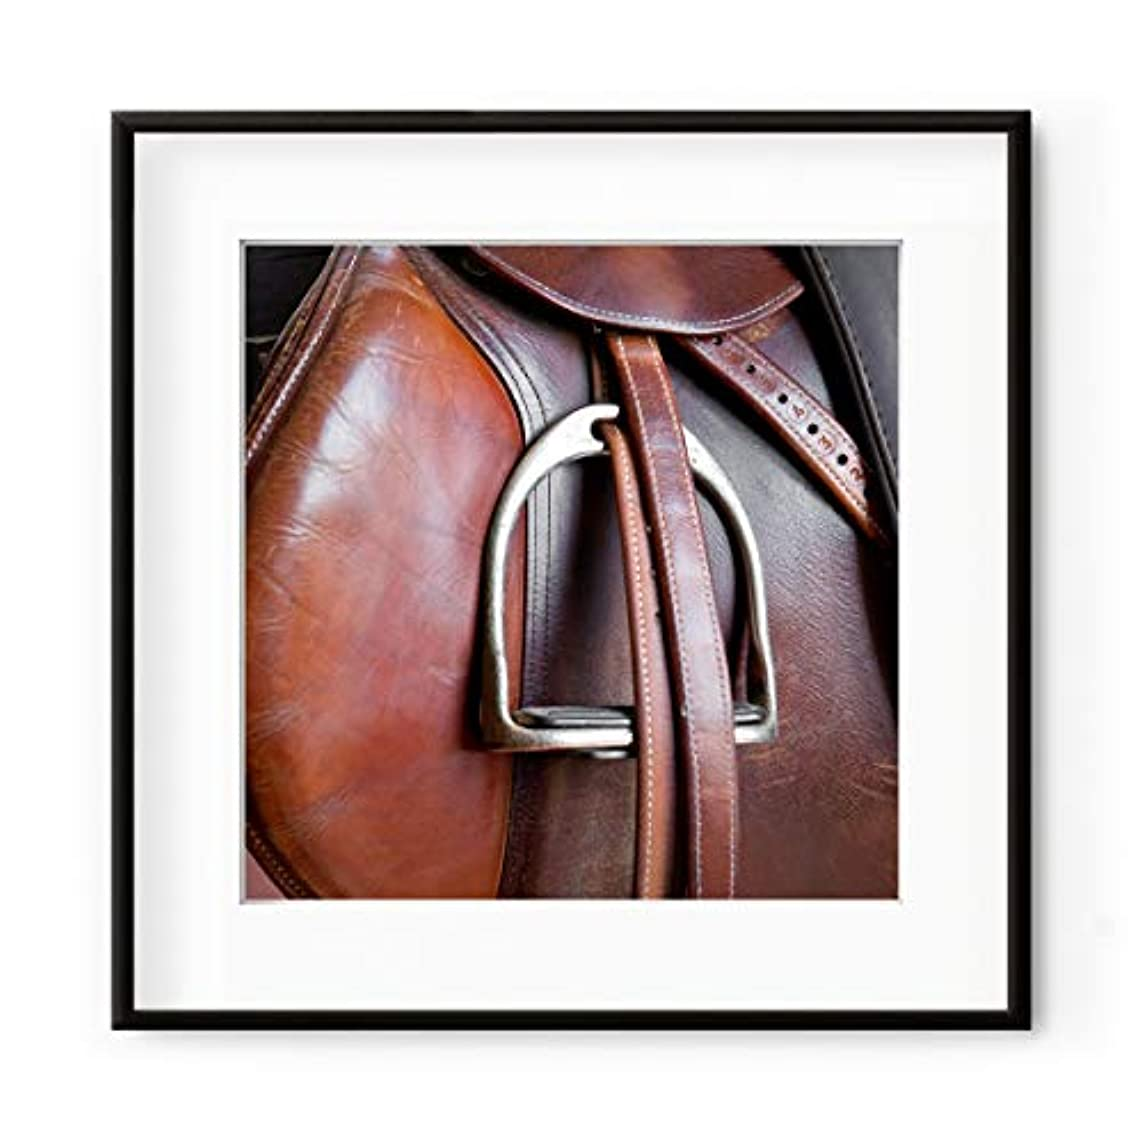 Horse Riding White Varnished Wooden Frame with Mount, Multicolored, 50x50